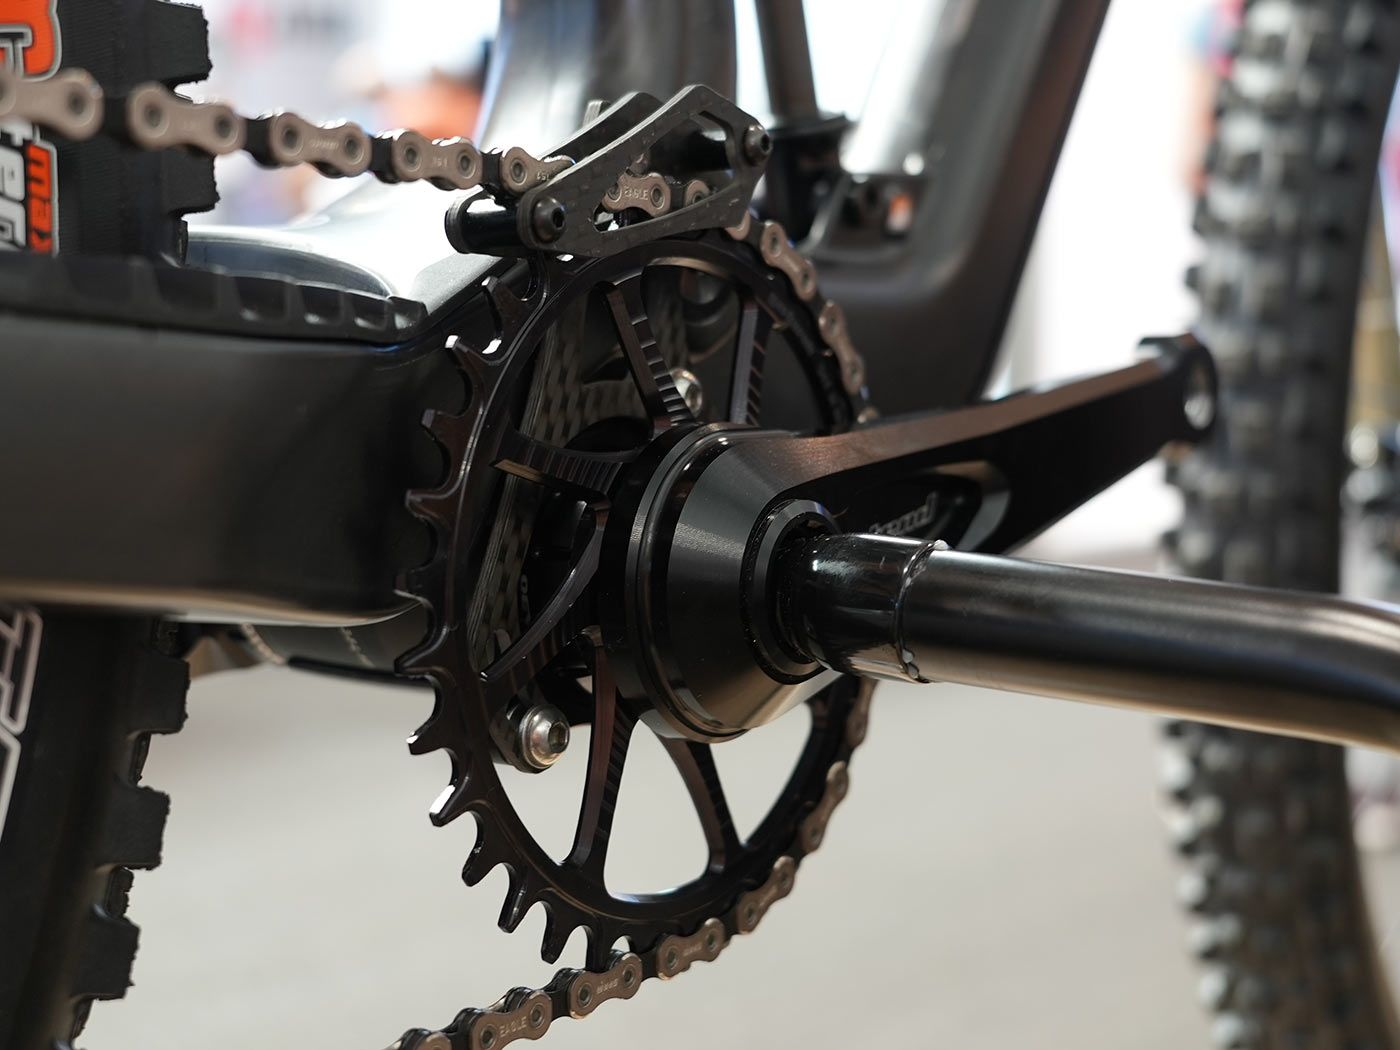 Intend adds a freewheel to their cranks, letting you shift without pedaling thumbnail